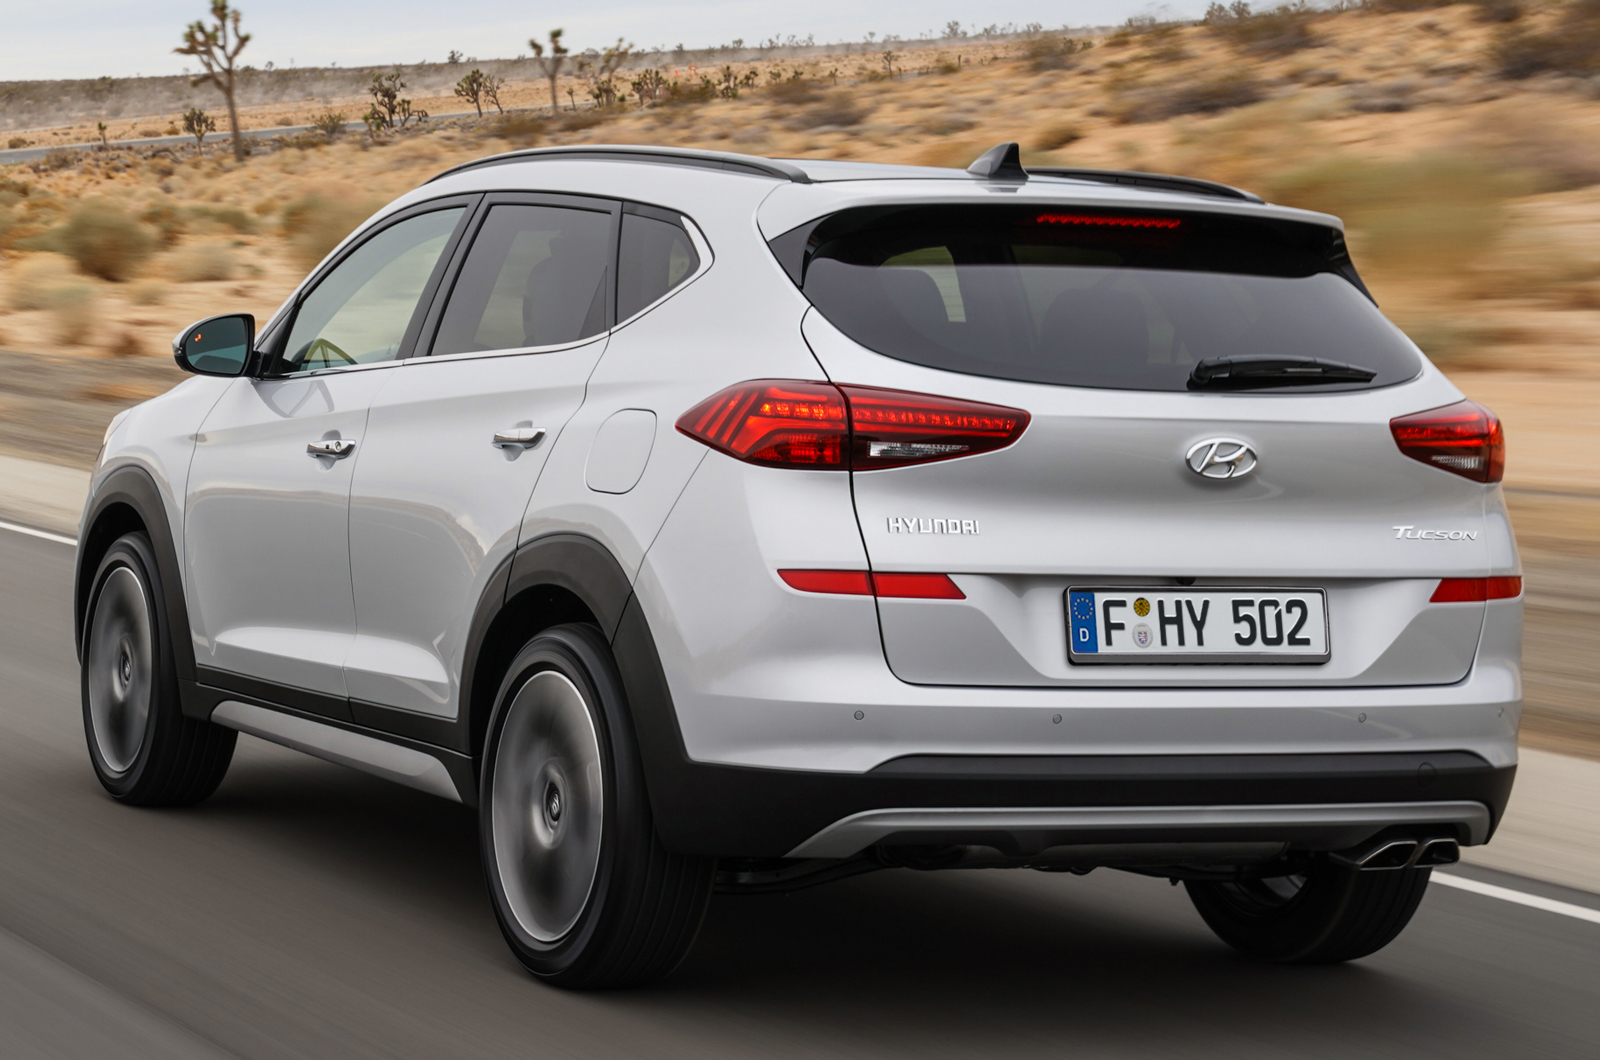 2018 Hyundai Tucson Priced From 163 21 845 Autocar